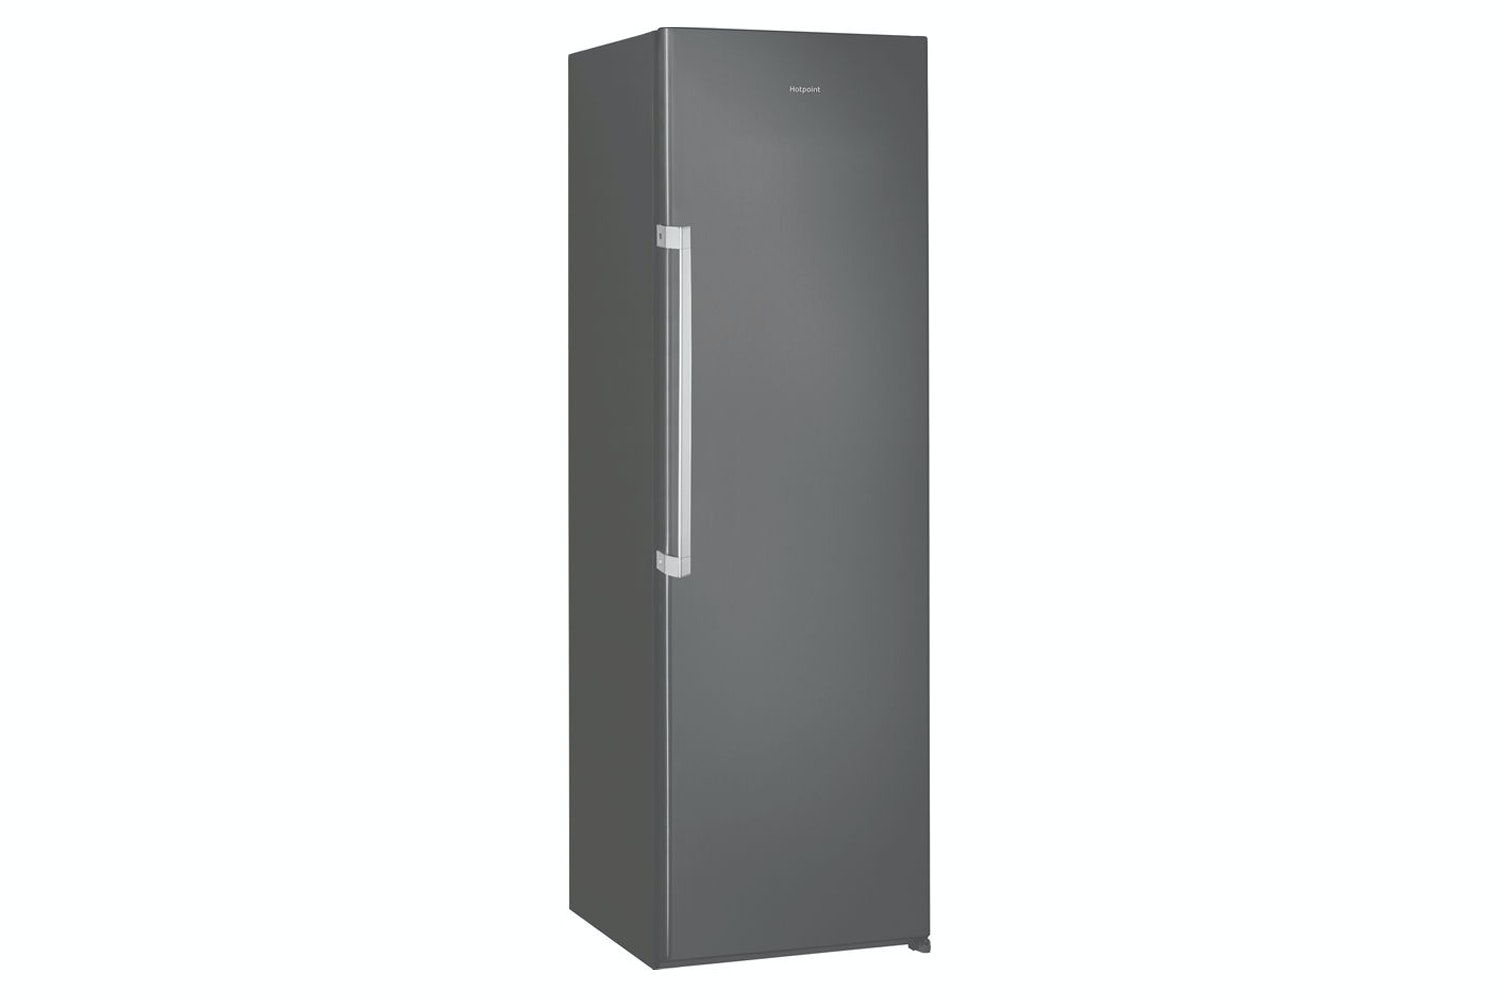 Hotpoint Frost Free Freezer | UH8F1CG